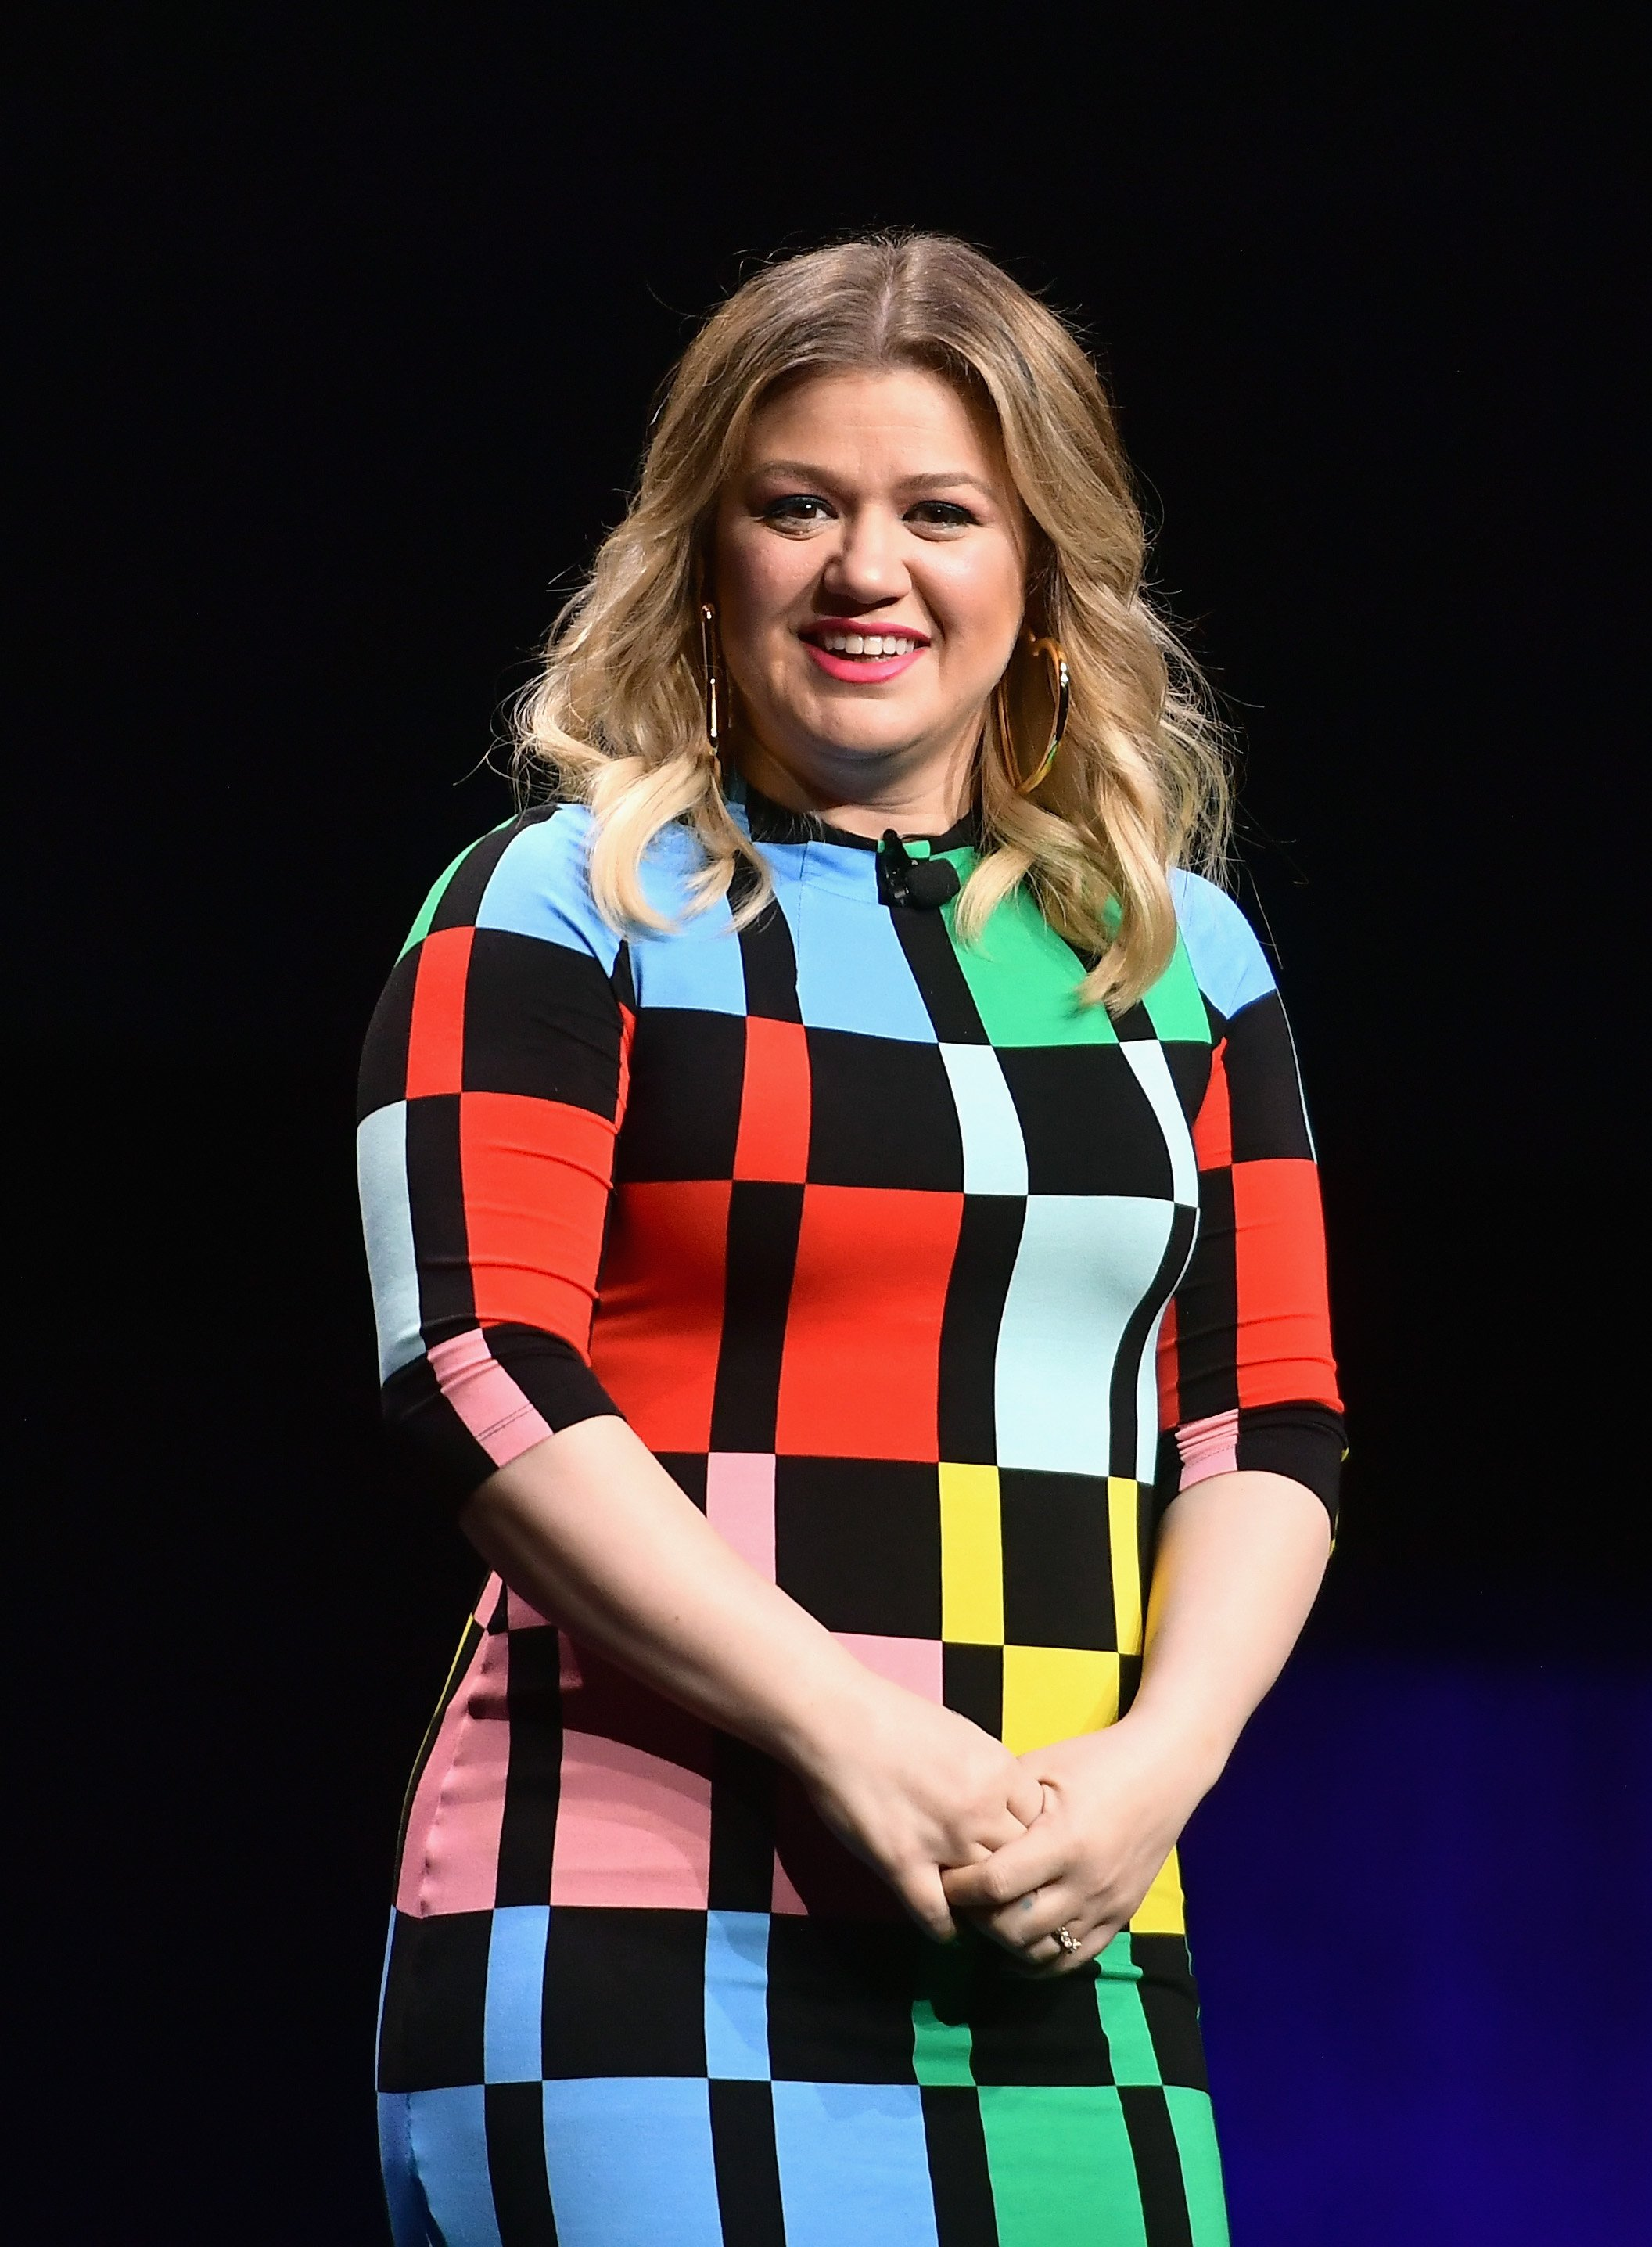 Kelly Clarkson speaks at CinemaCon 2019 in Las Vegas, Nevada on April 2, 2019 | Photo: Getty Images